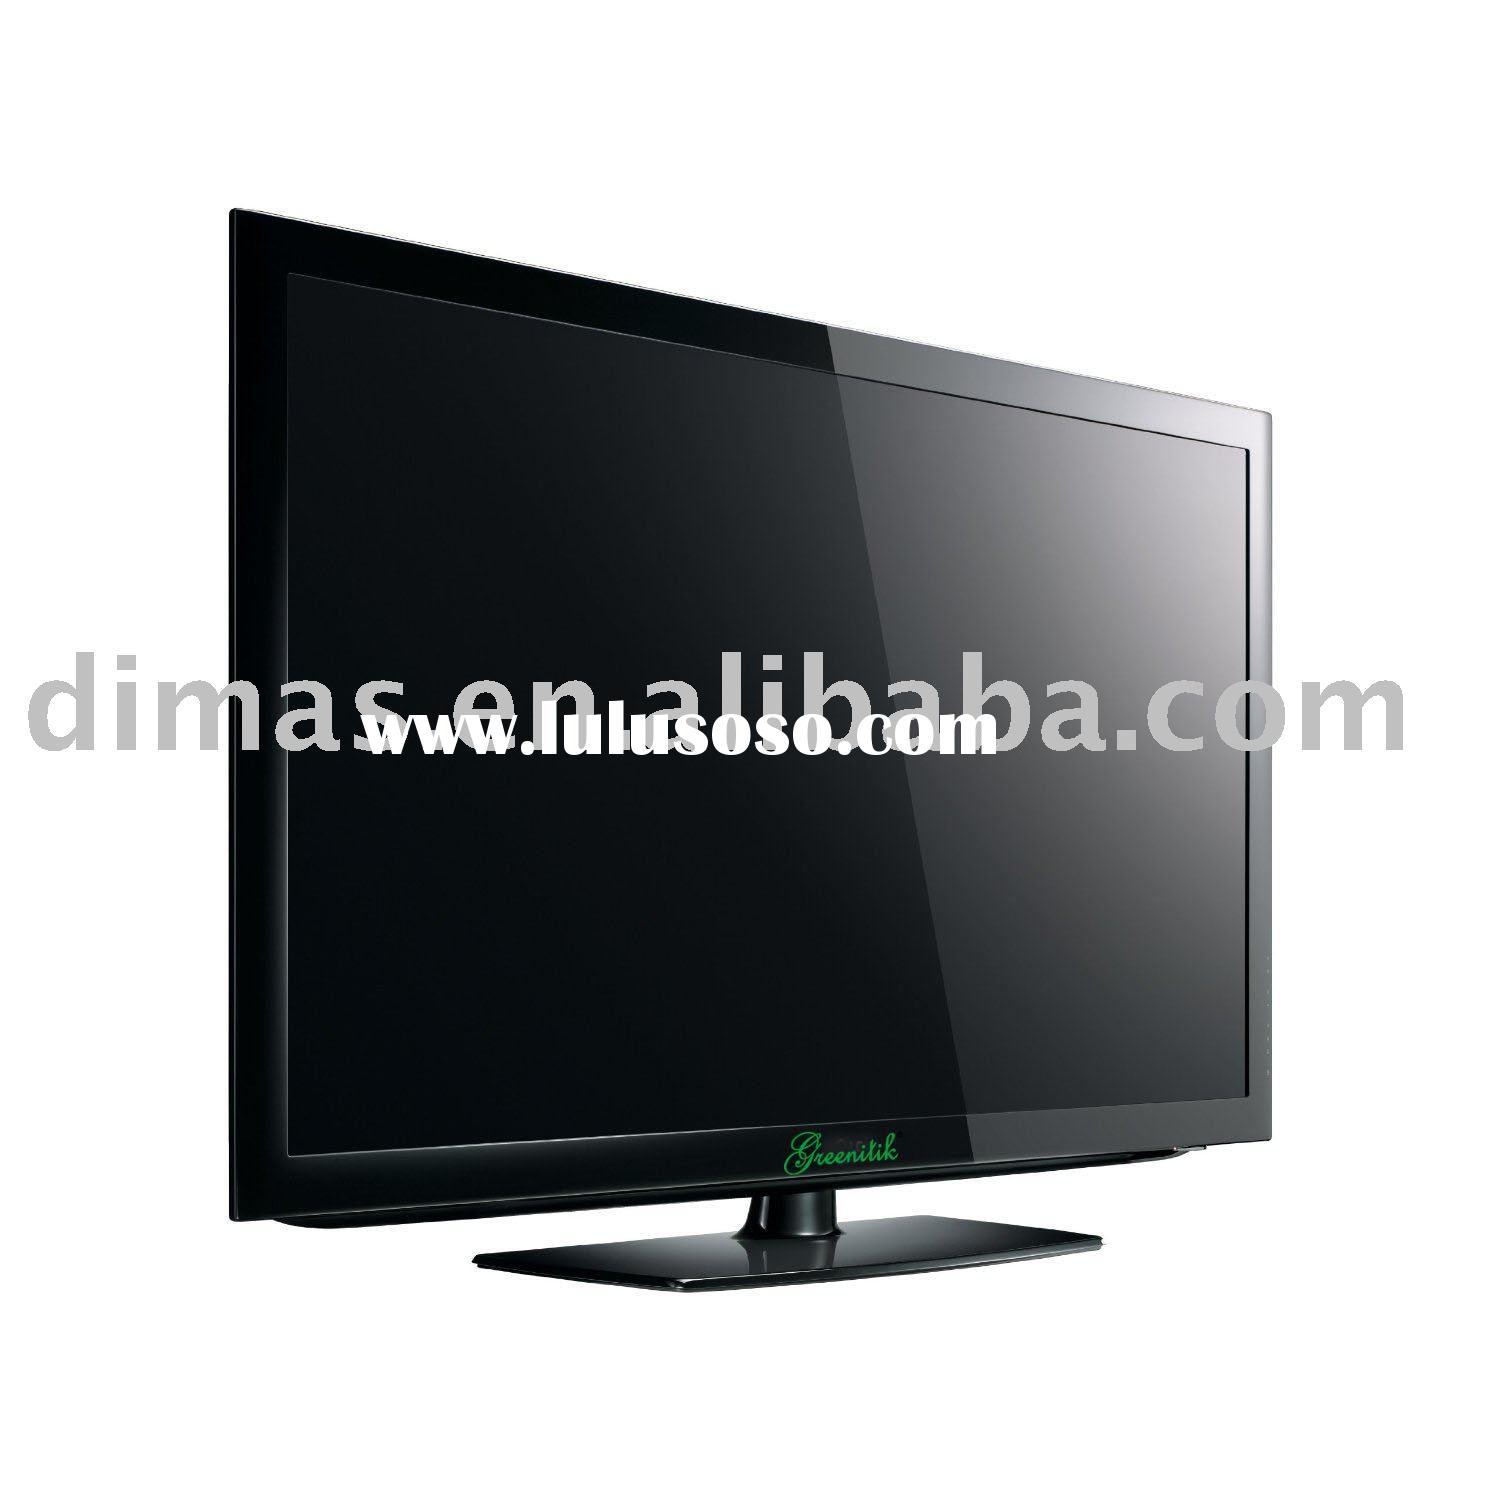 42inc lcd /led tv with hd